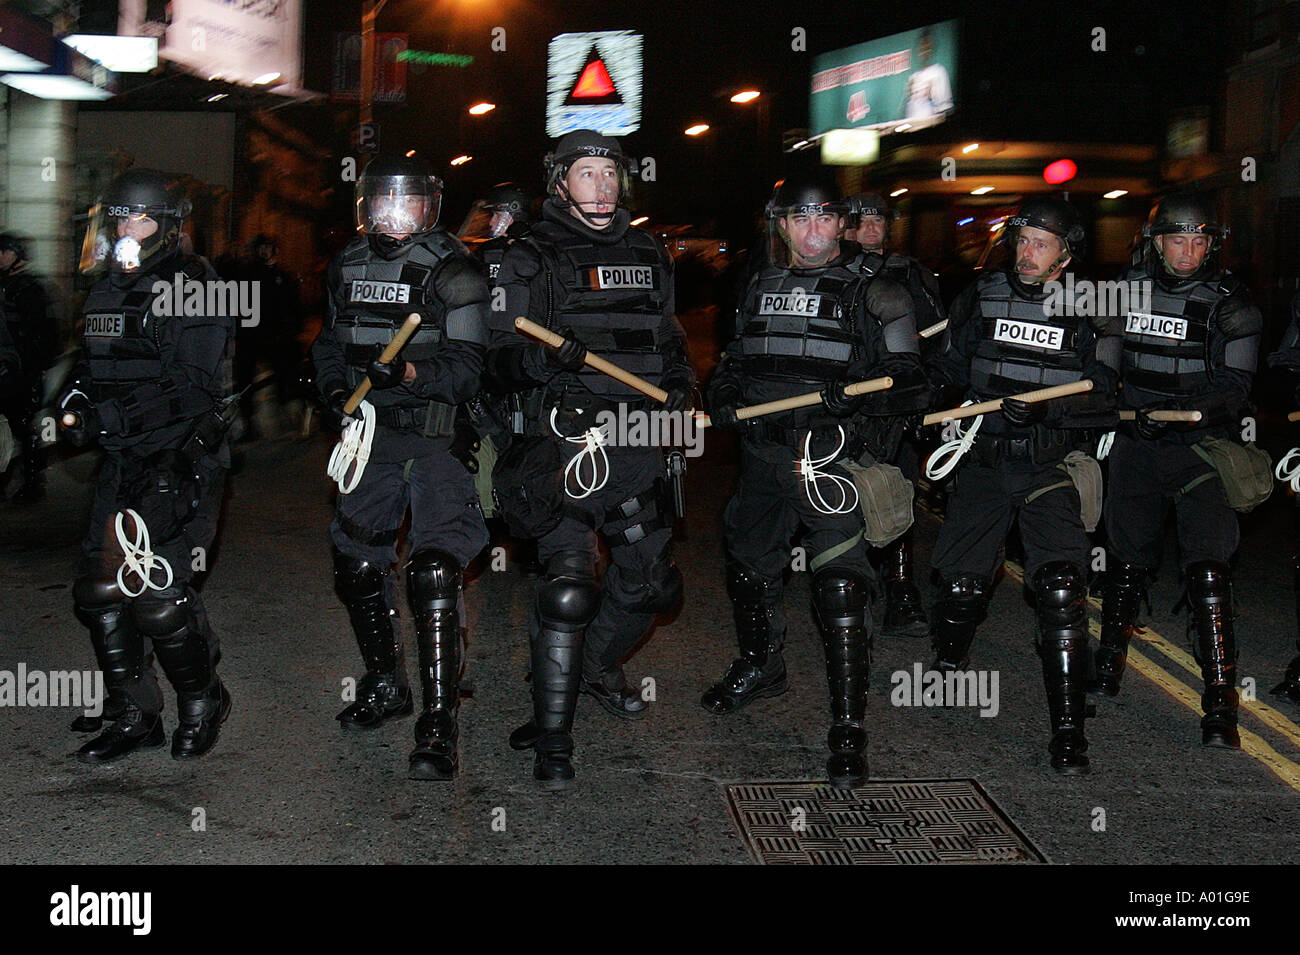 Riot equipped police, Boston, Massachusetts - Stock Image